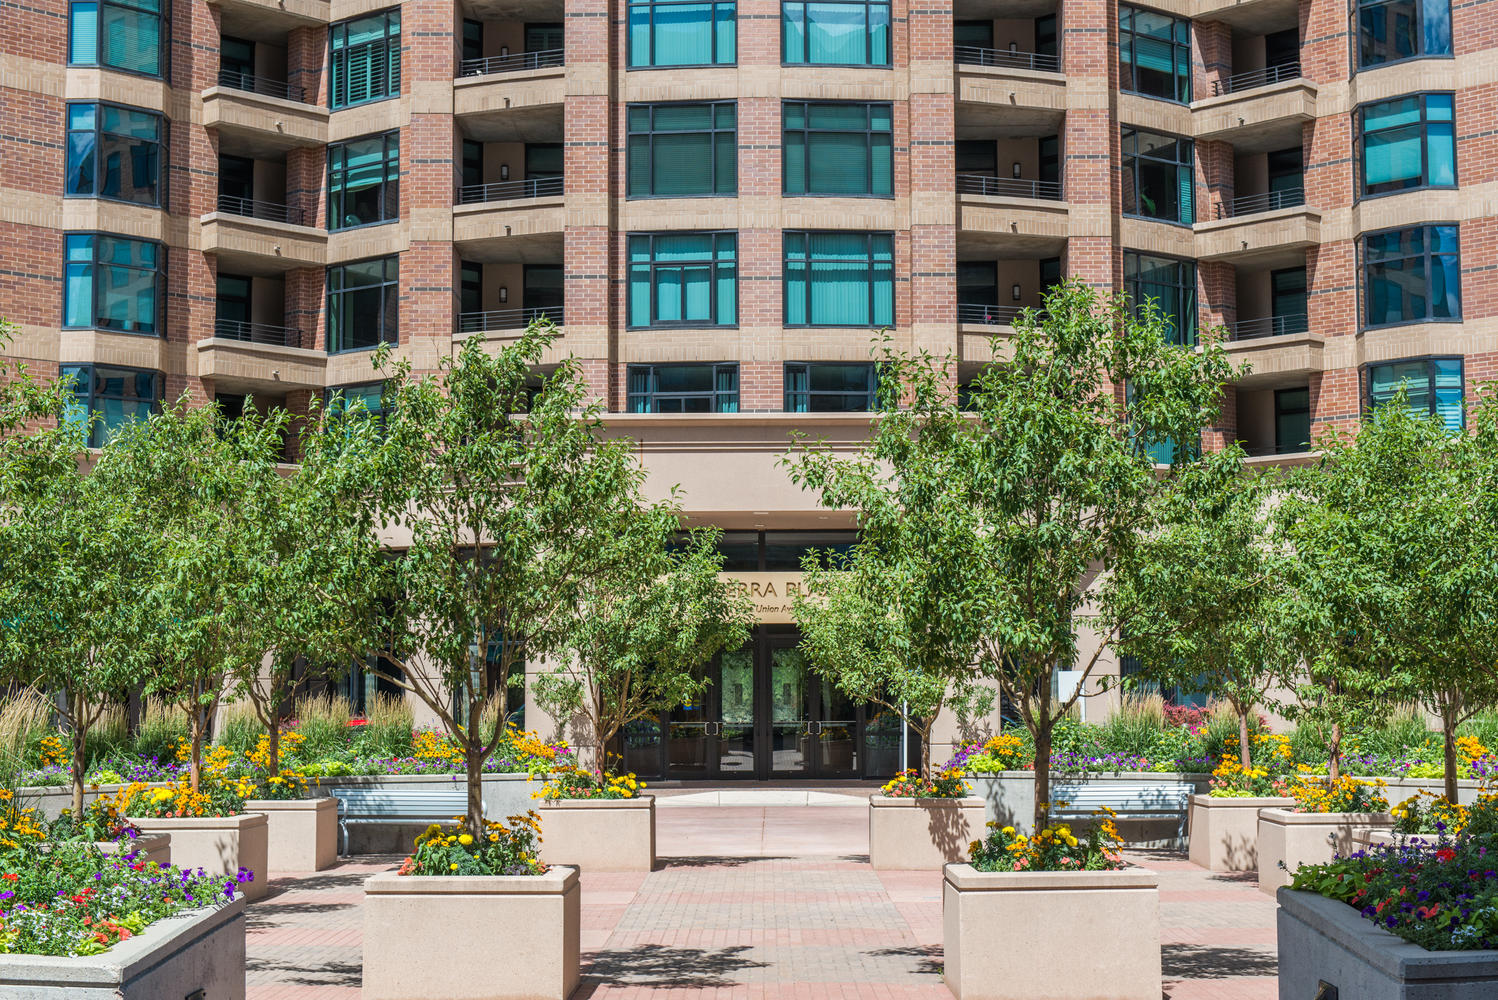 Single Family Home for Sale at This is an exquisite penthouse residence in Penterra Plaza 8100 E Union Ave #2303 Denver, Colorado, 80237 United States